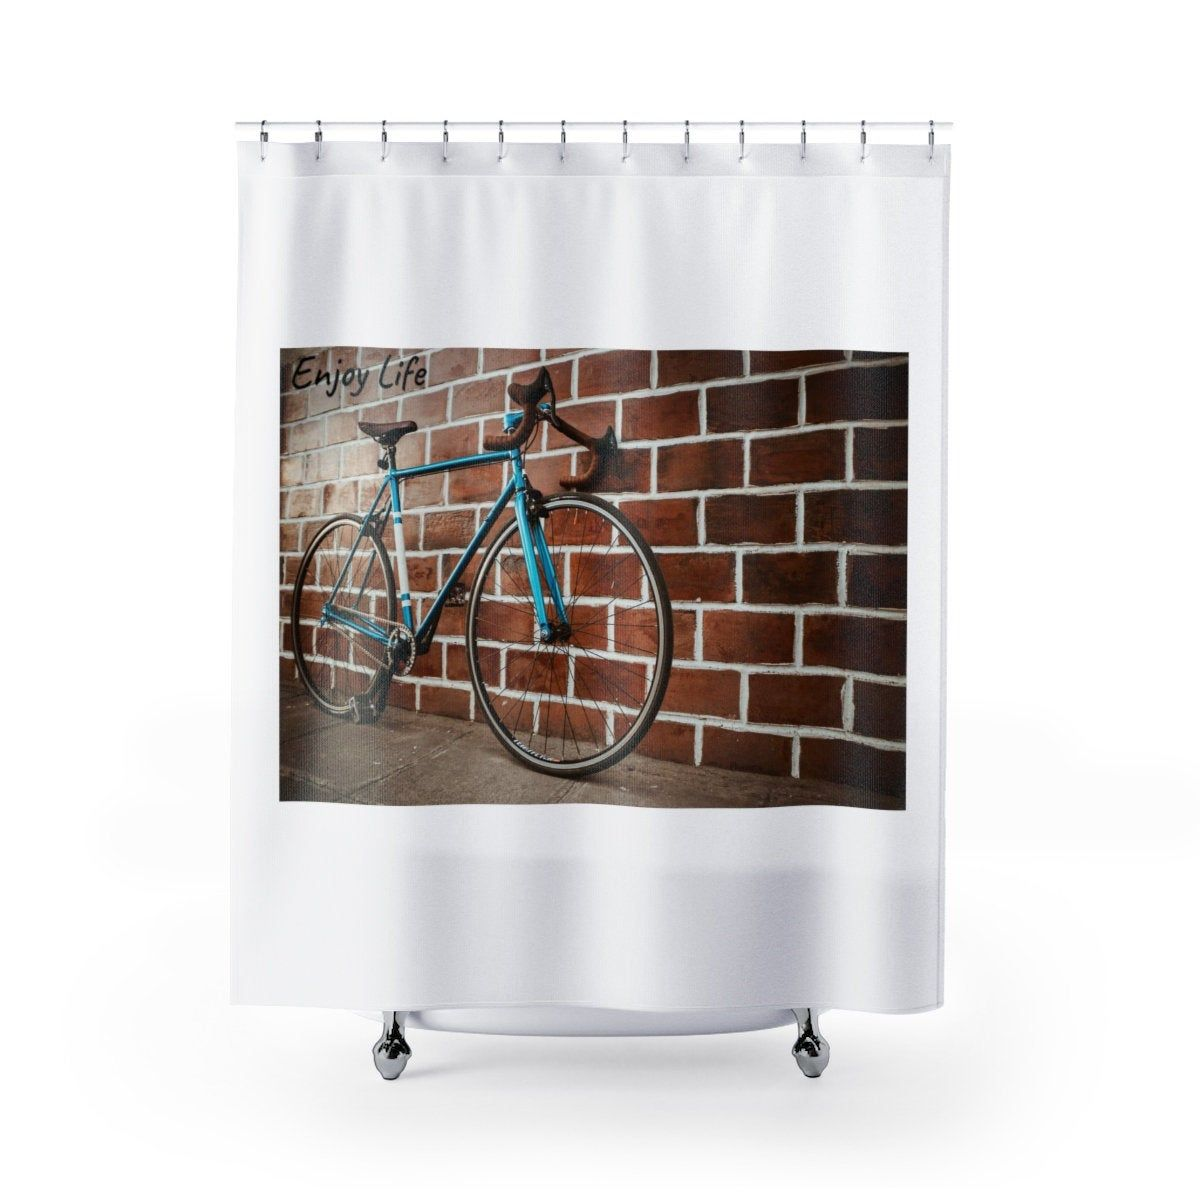 Bicycle Shower Curtain Cyclist Shower Curtain Inspirational Shower Curtain Bicycle Decor Cyclist Bath Decor Bicycle Bath Set In 2020 Bath Decor Bicycle Decor Shower Curtain